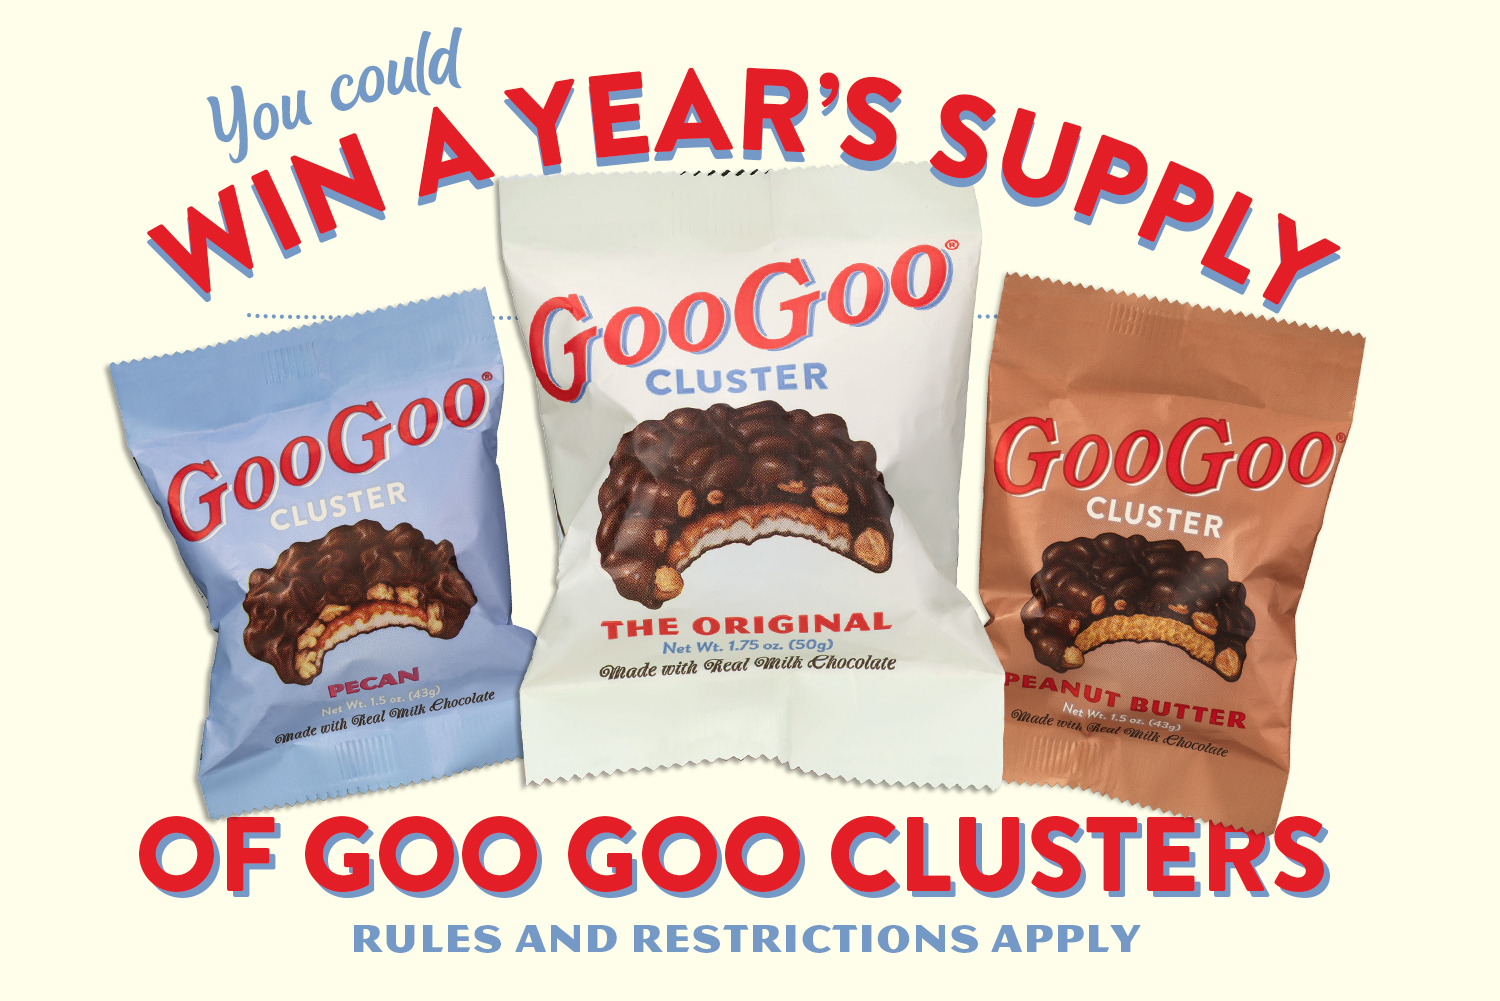 Enter to win a year's supply of Goo Goo Clusters! Image